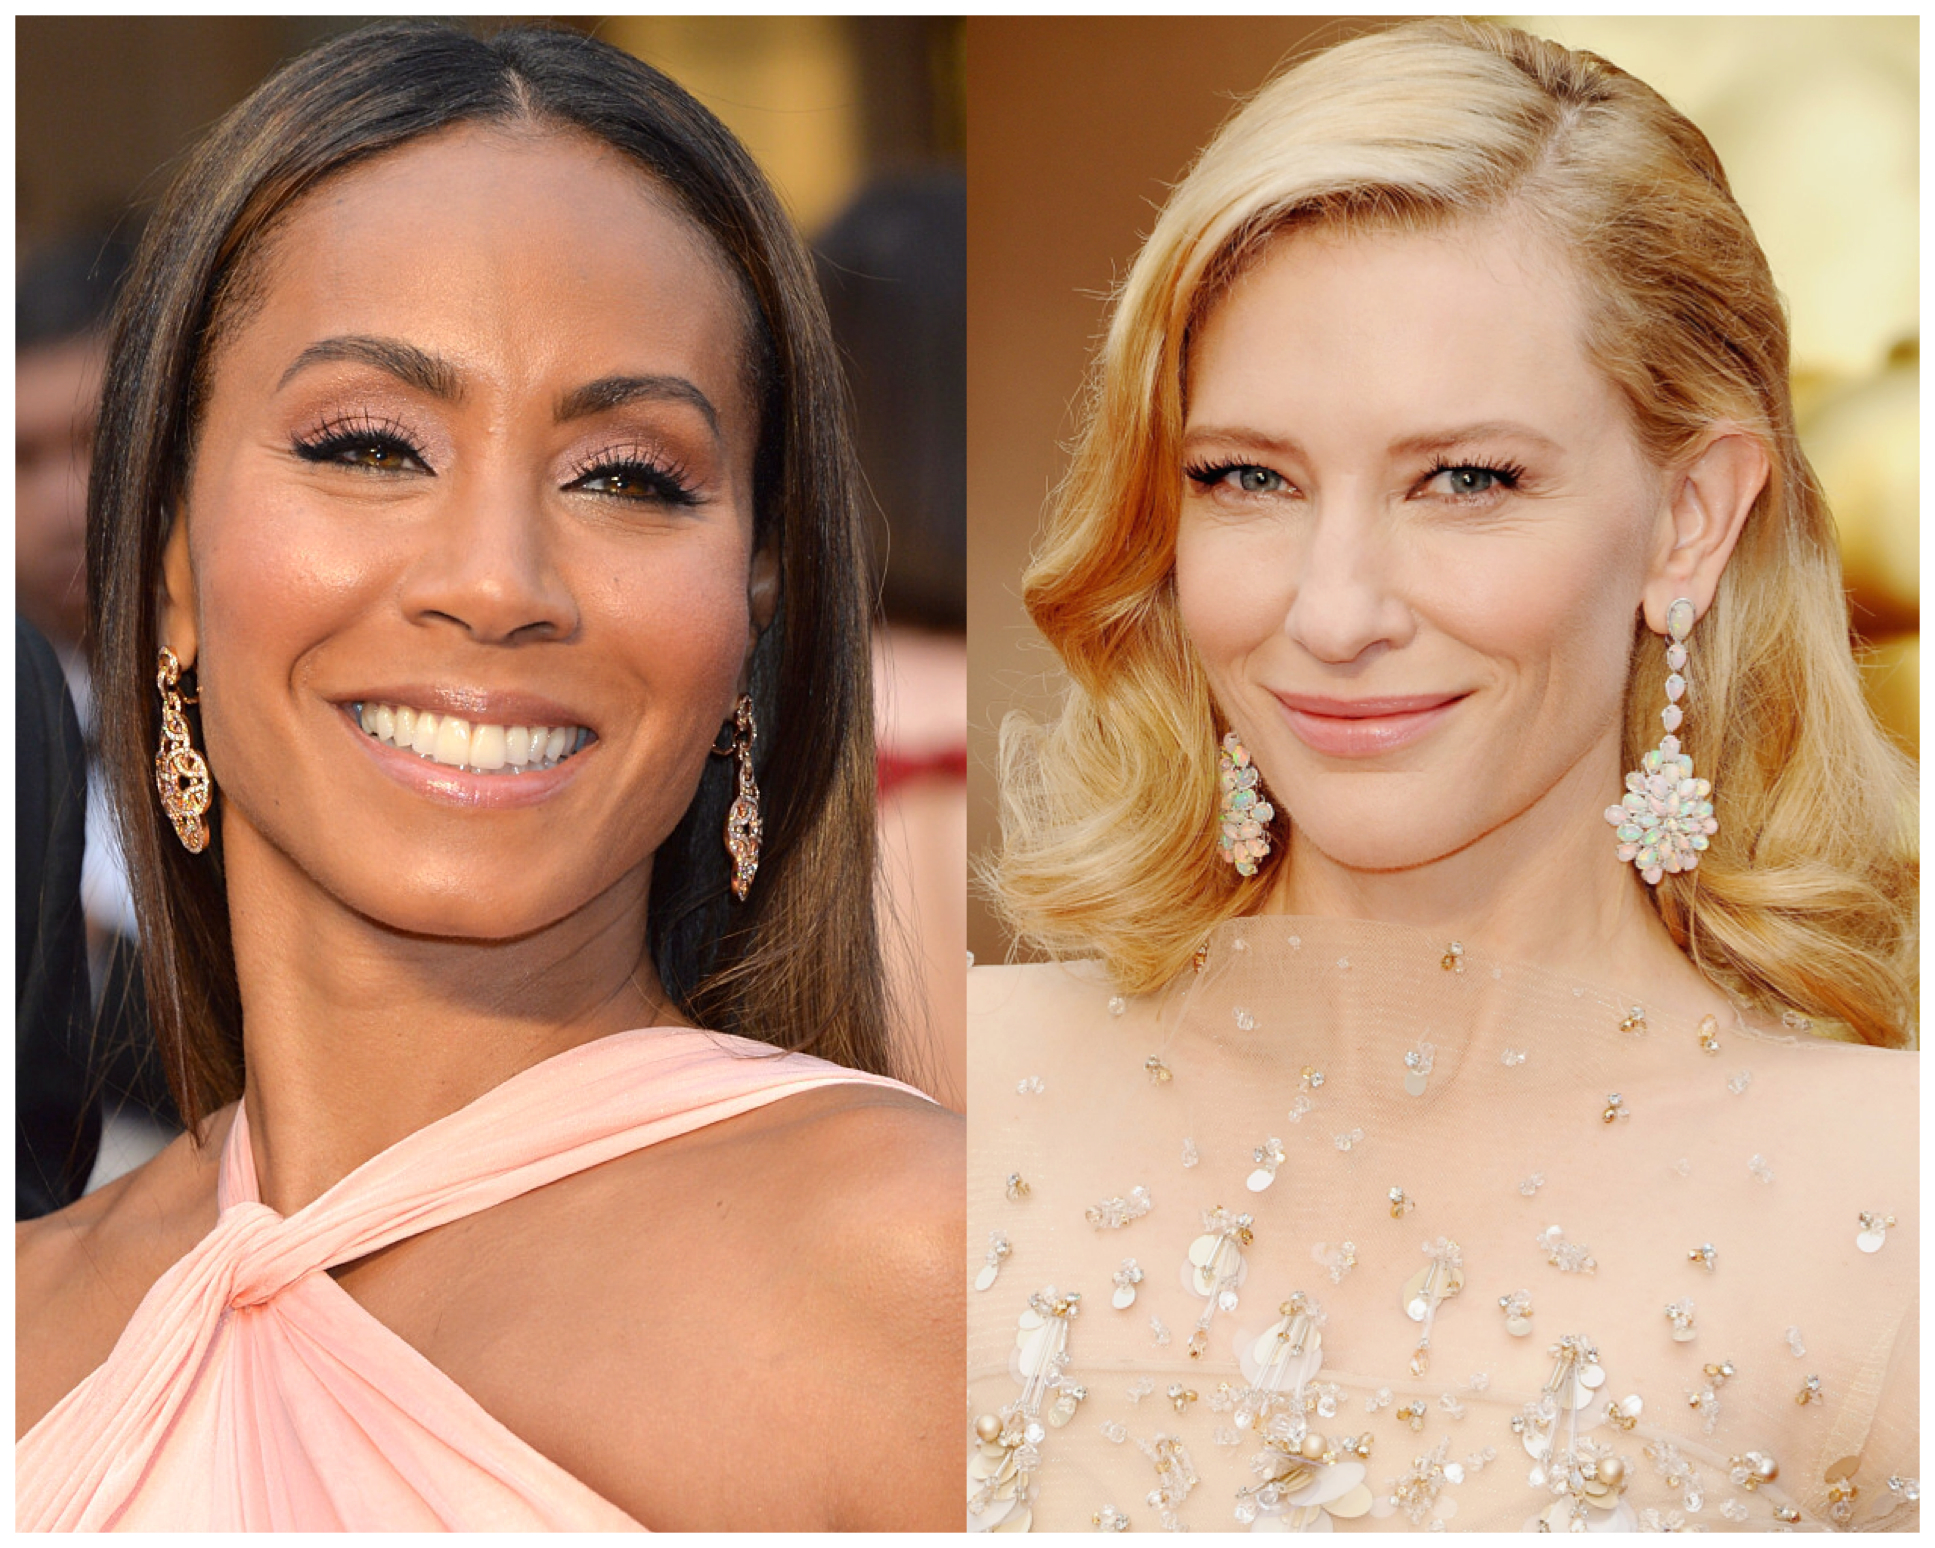 Jada Pinkett-Smith and Cate Blanchett